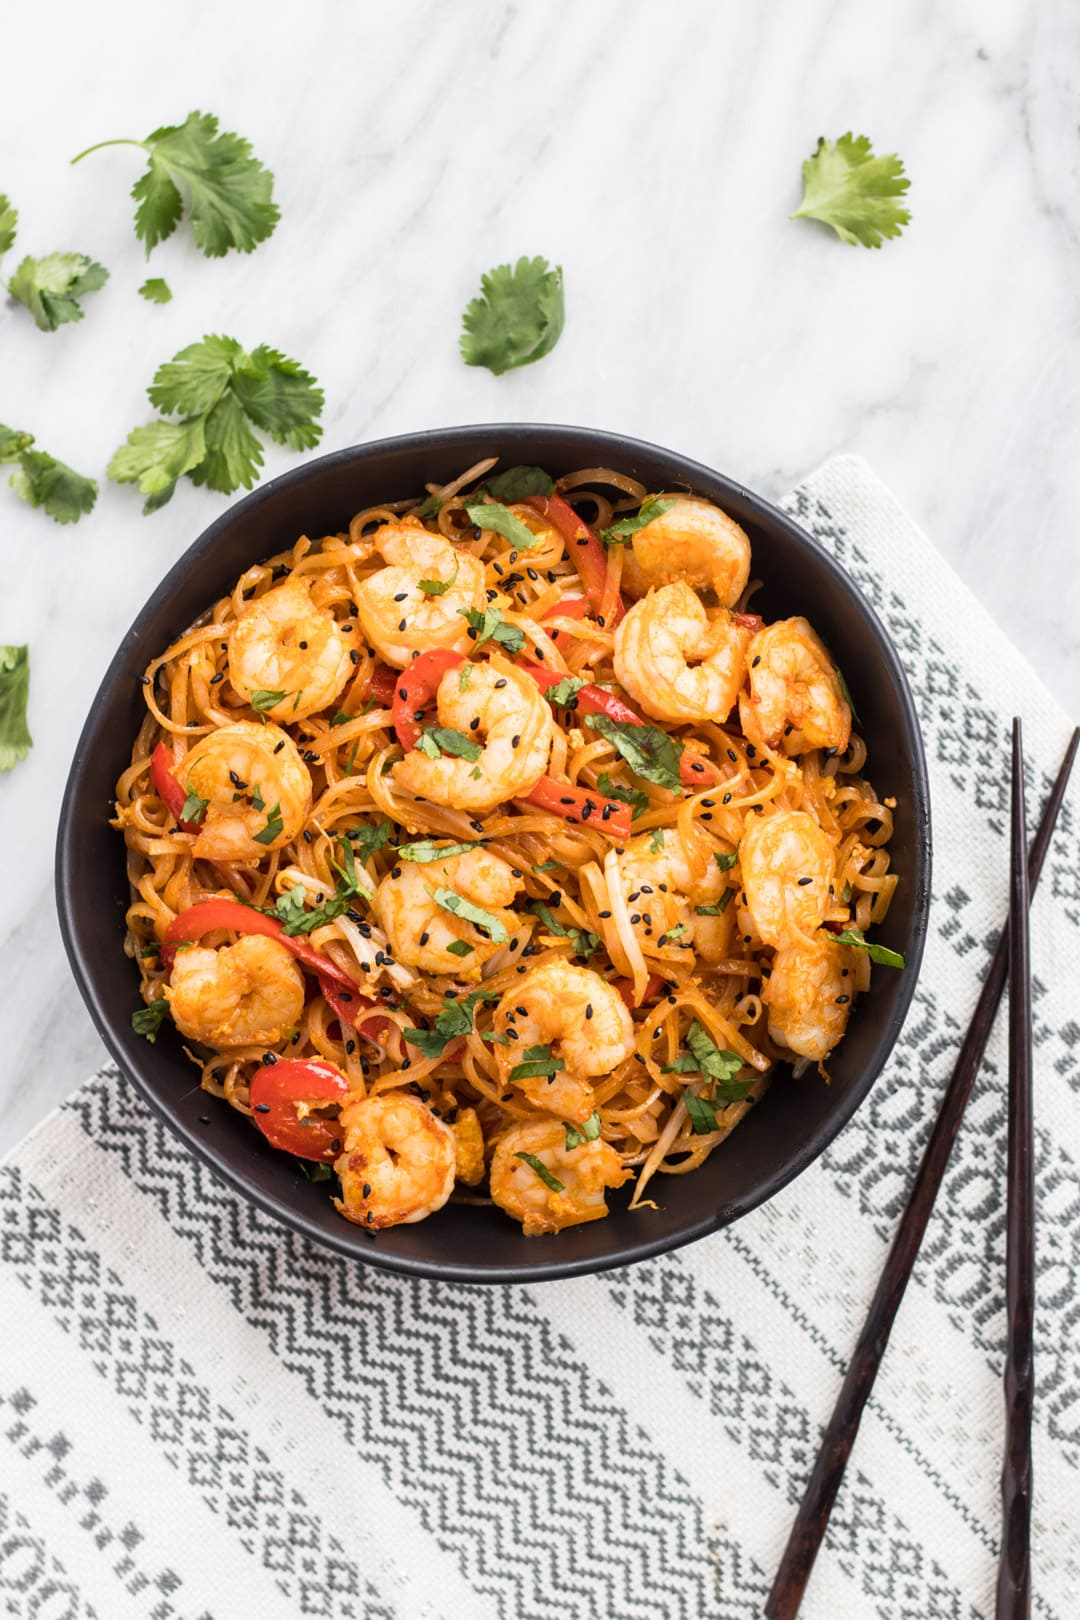 Bowl of low FODMAP Pad Thai with Shrimp and Chopsticks